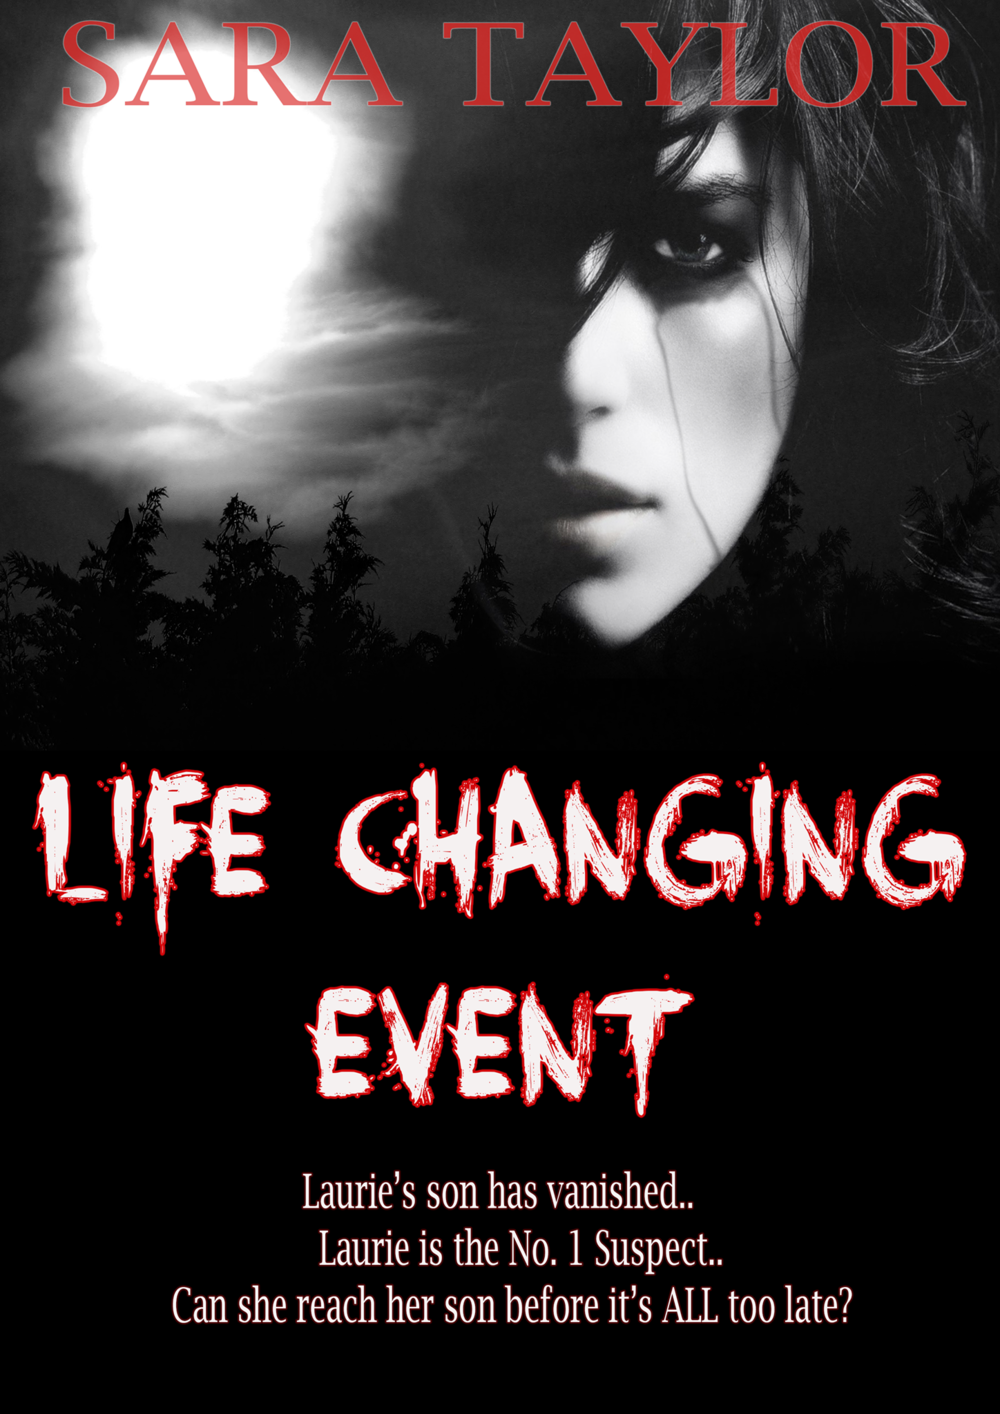 Life Changing Event_book cover by Steve Browne.png